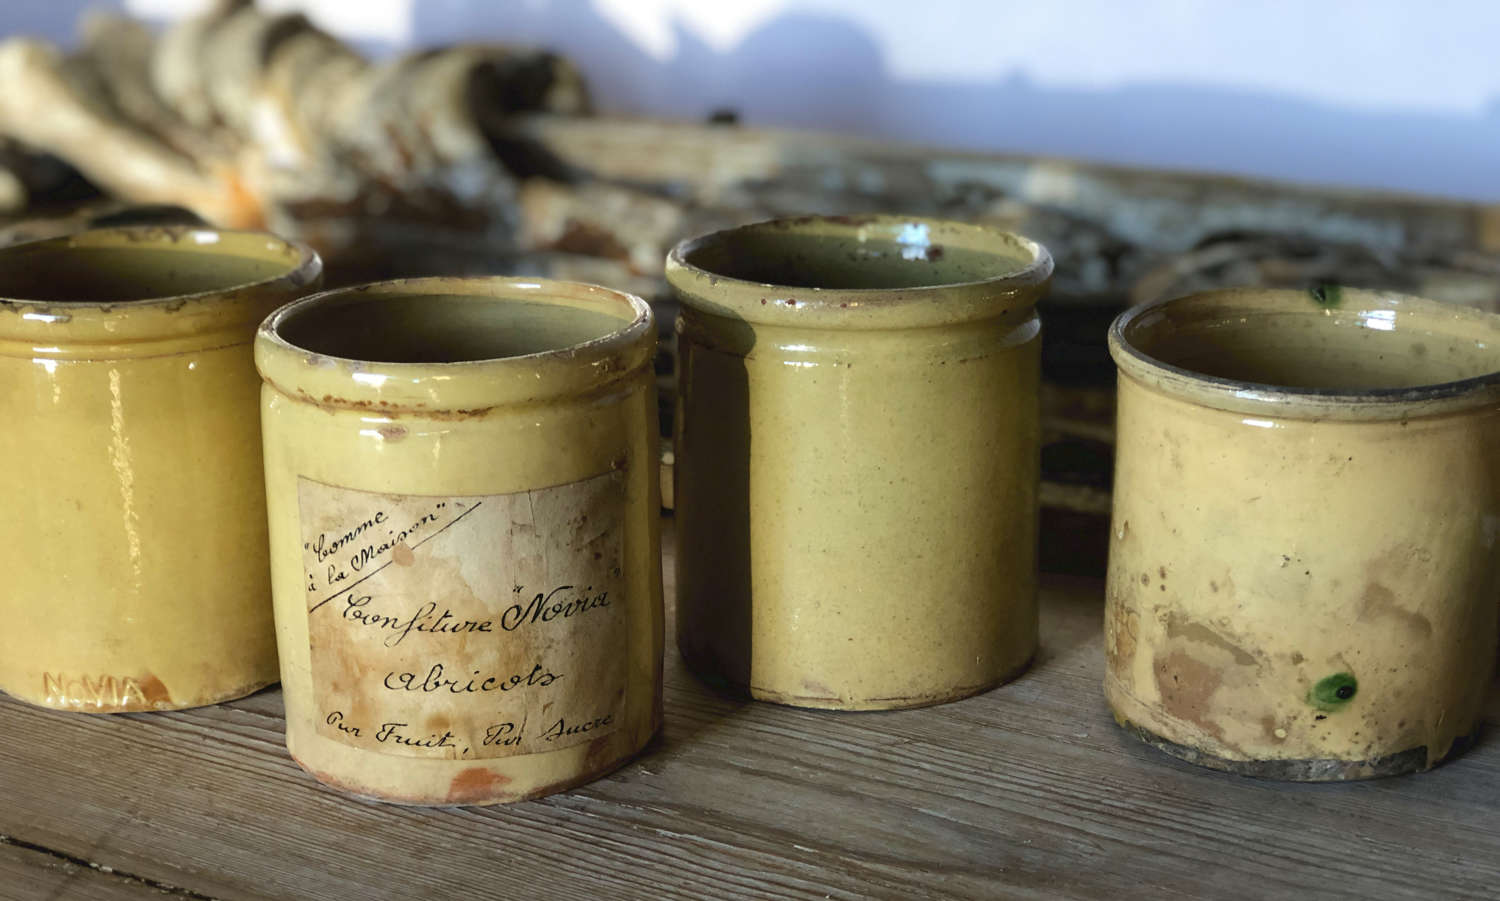 Small French Yellow glazed terracotta jars - circa 1900